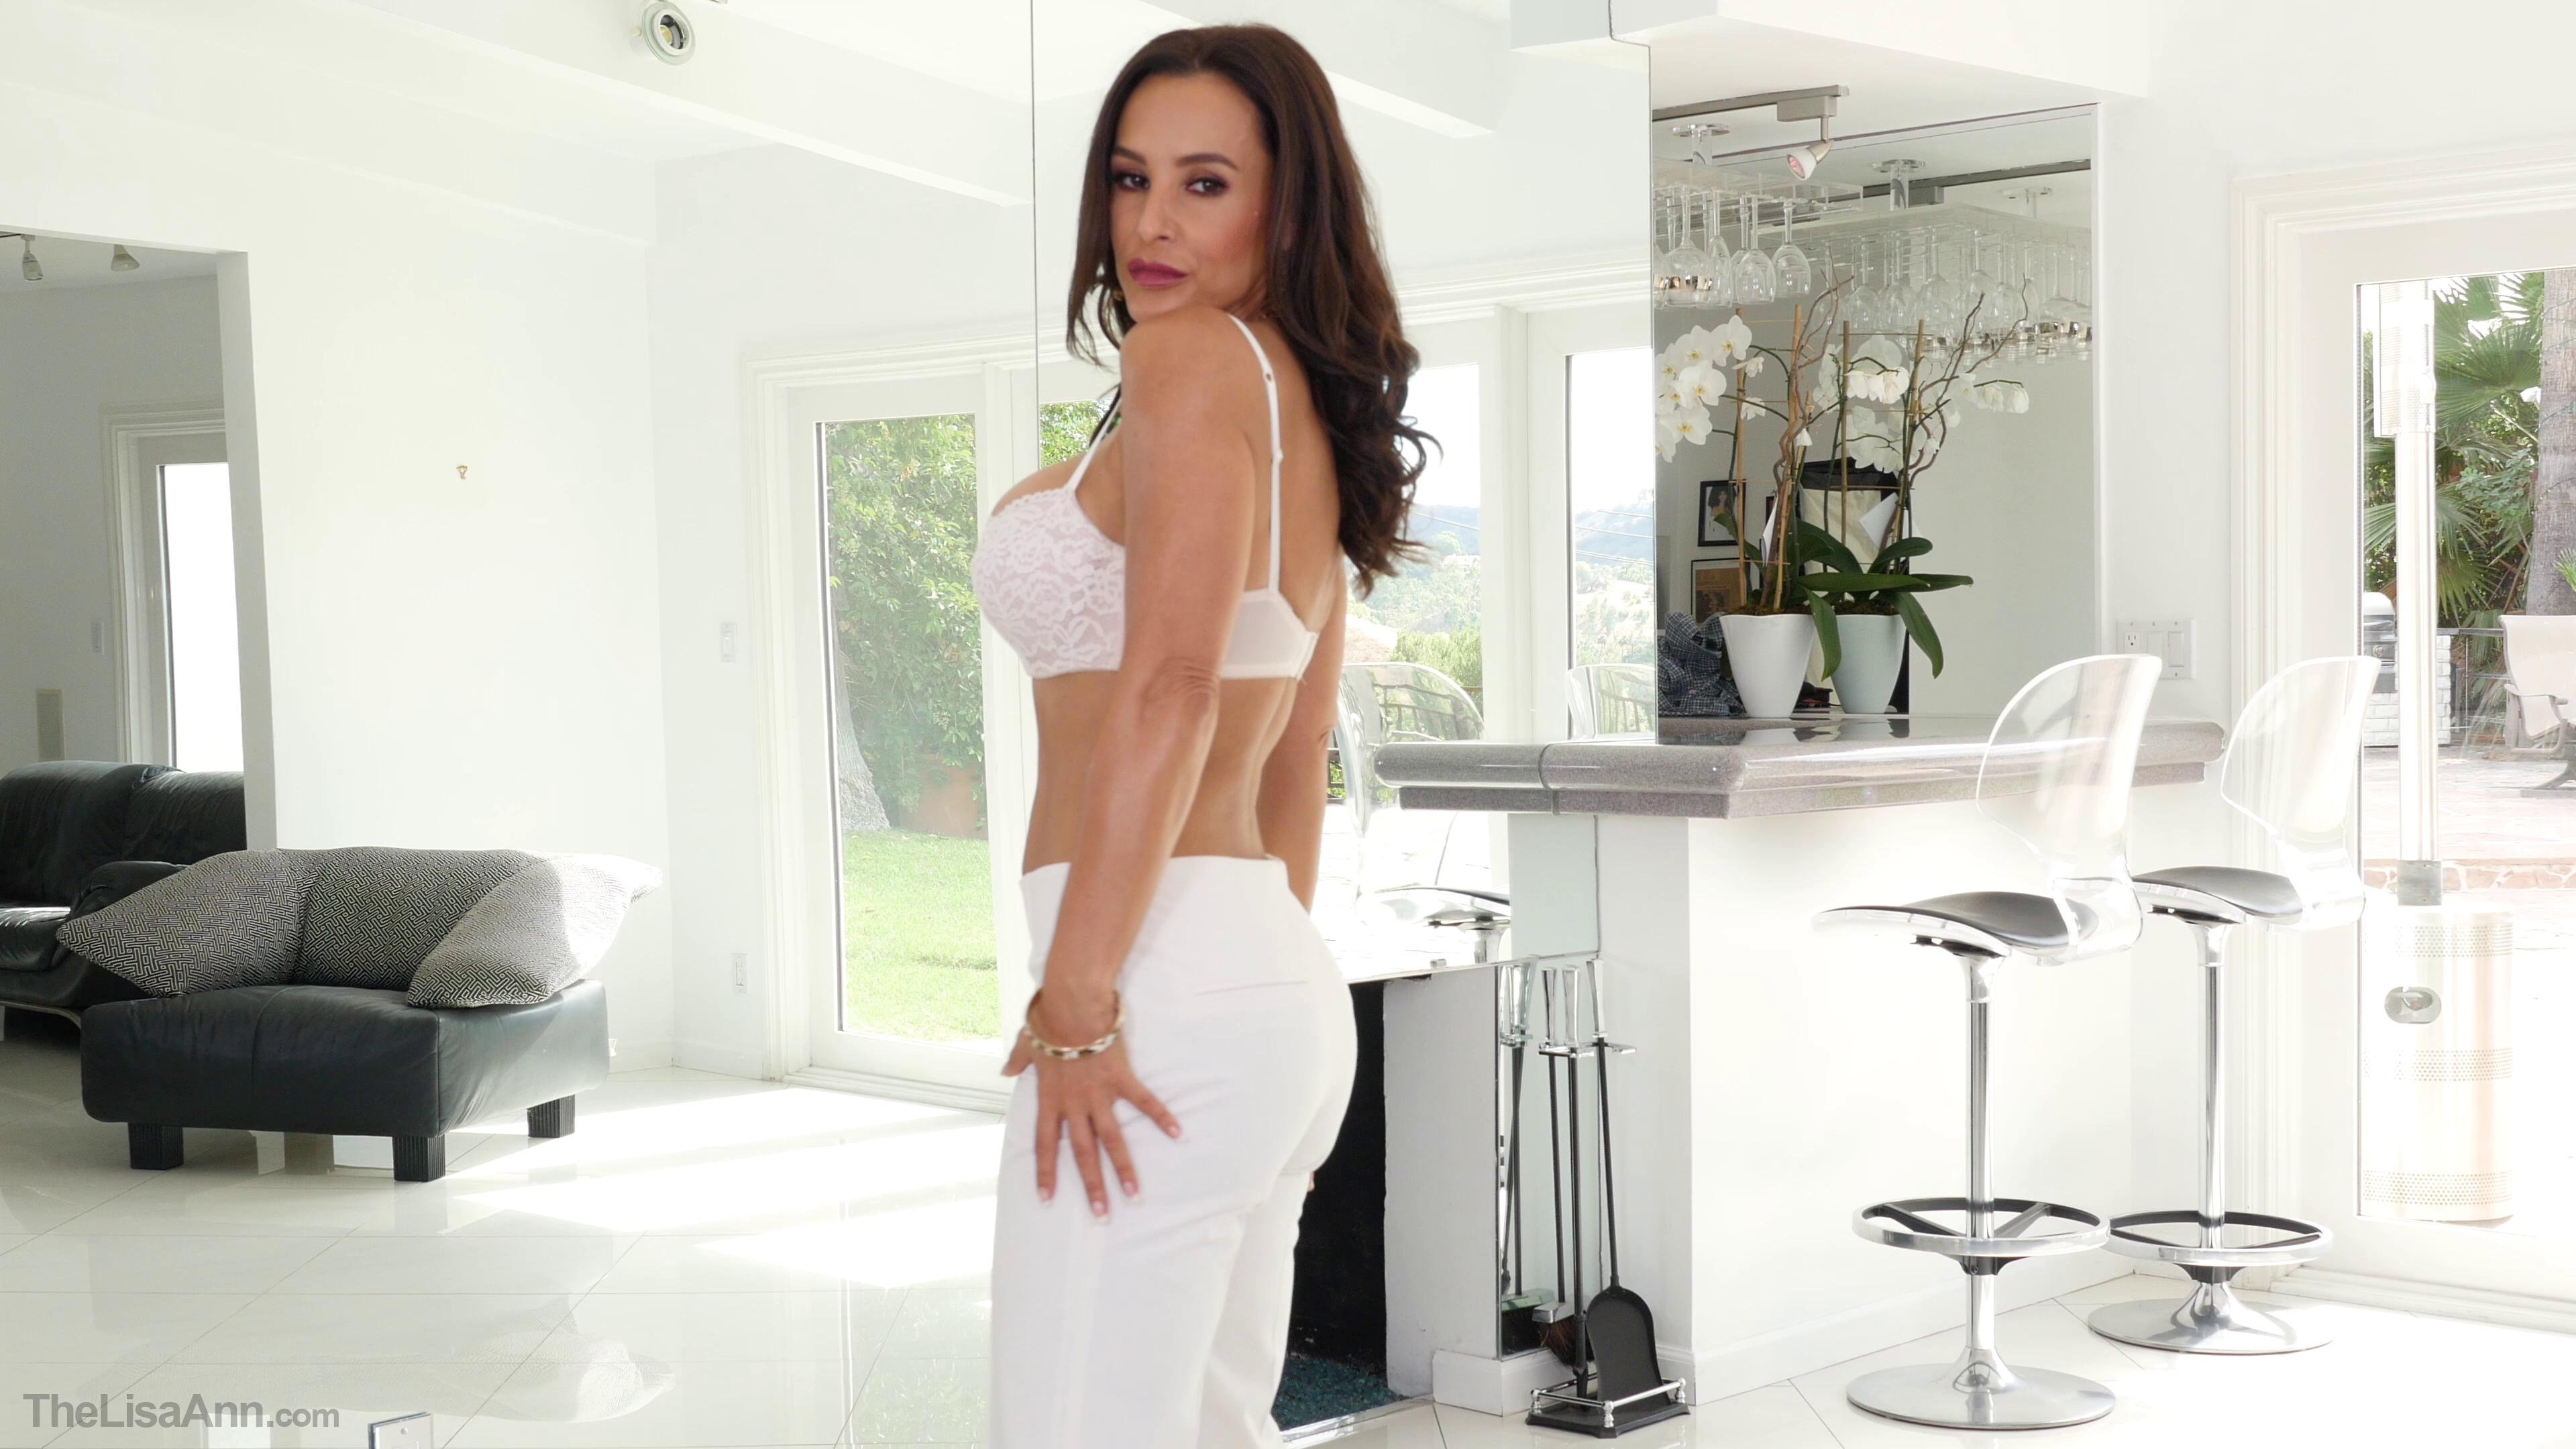 TheLisaAnn – Horny Housewife